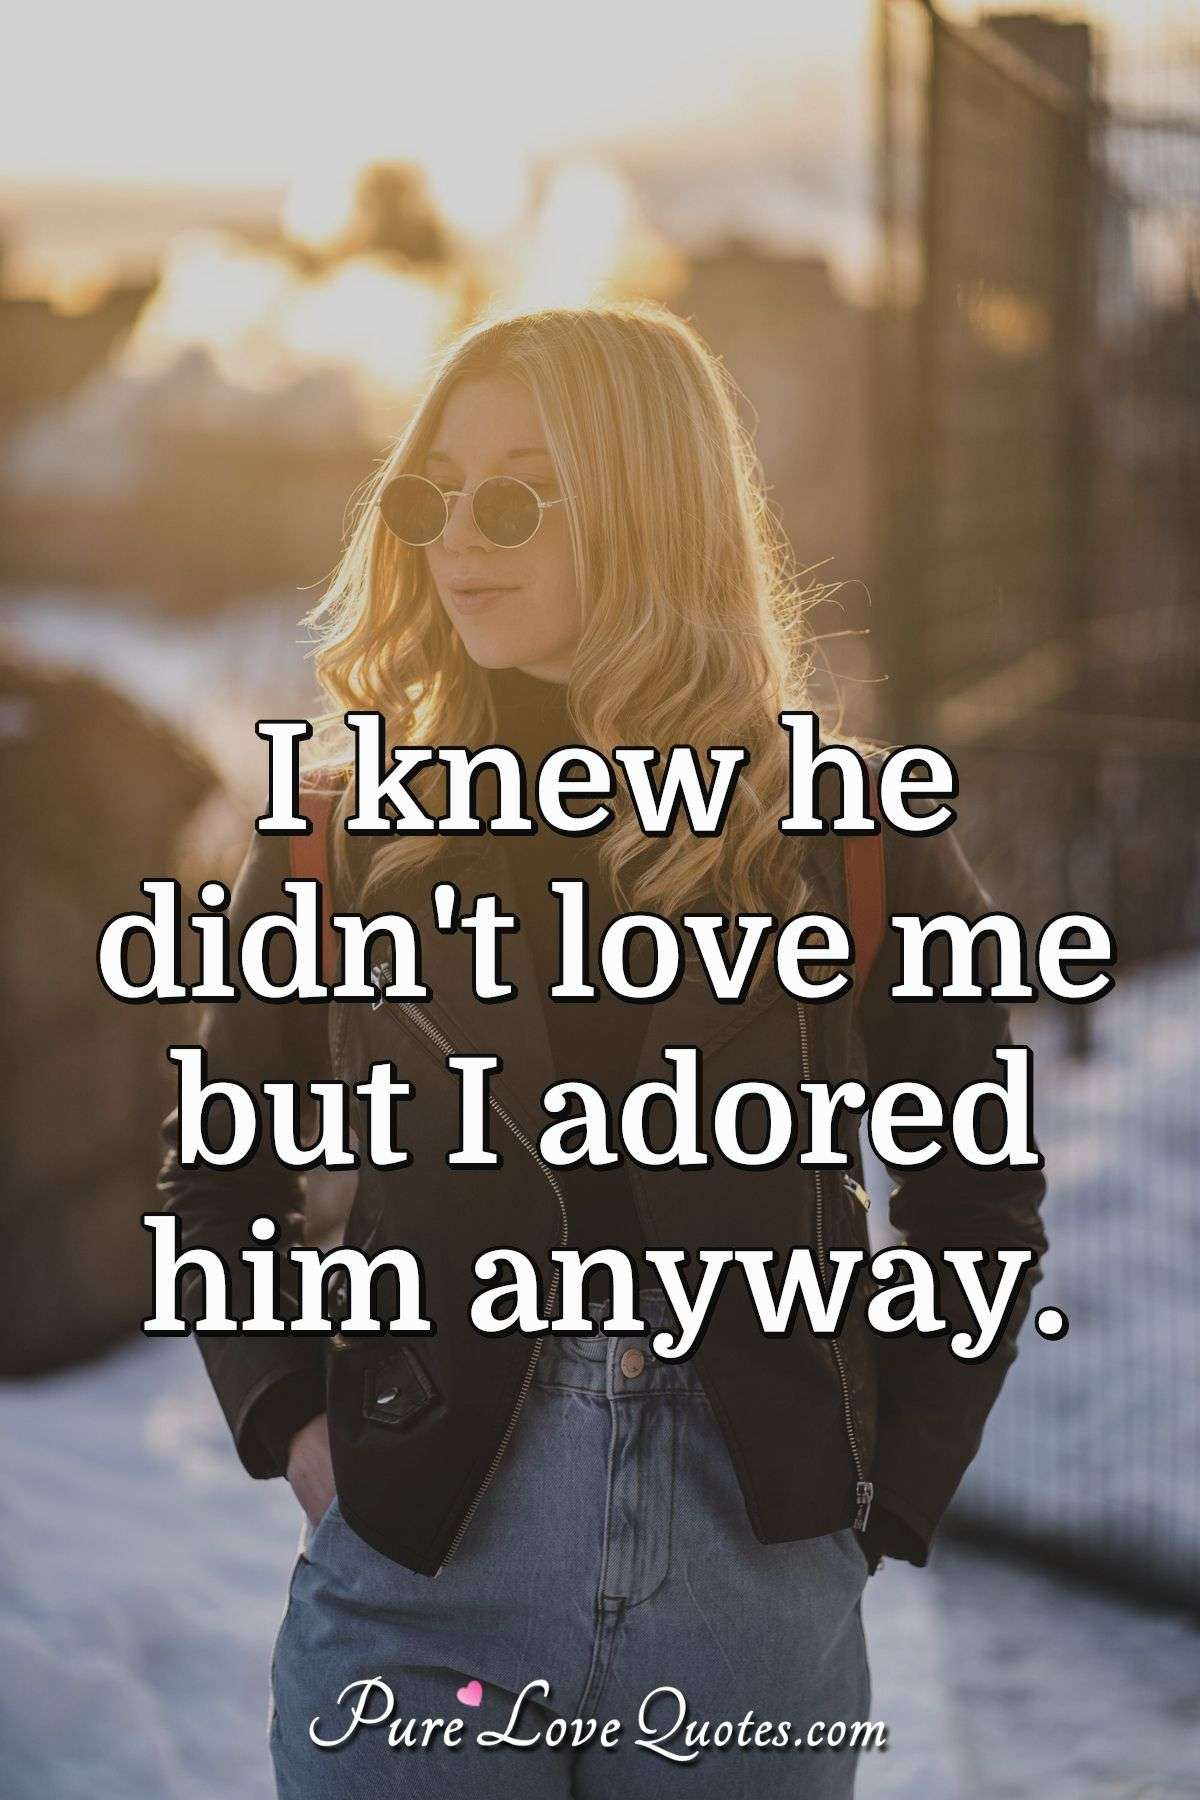 I knew he didn't love me but I adored him anyway. - Anonymous